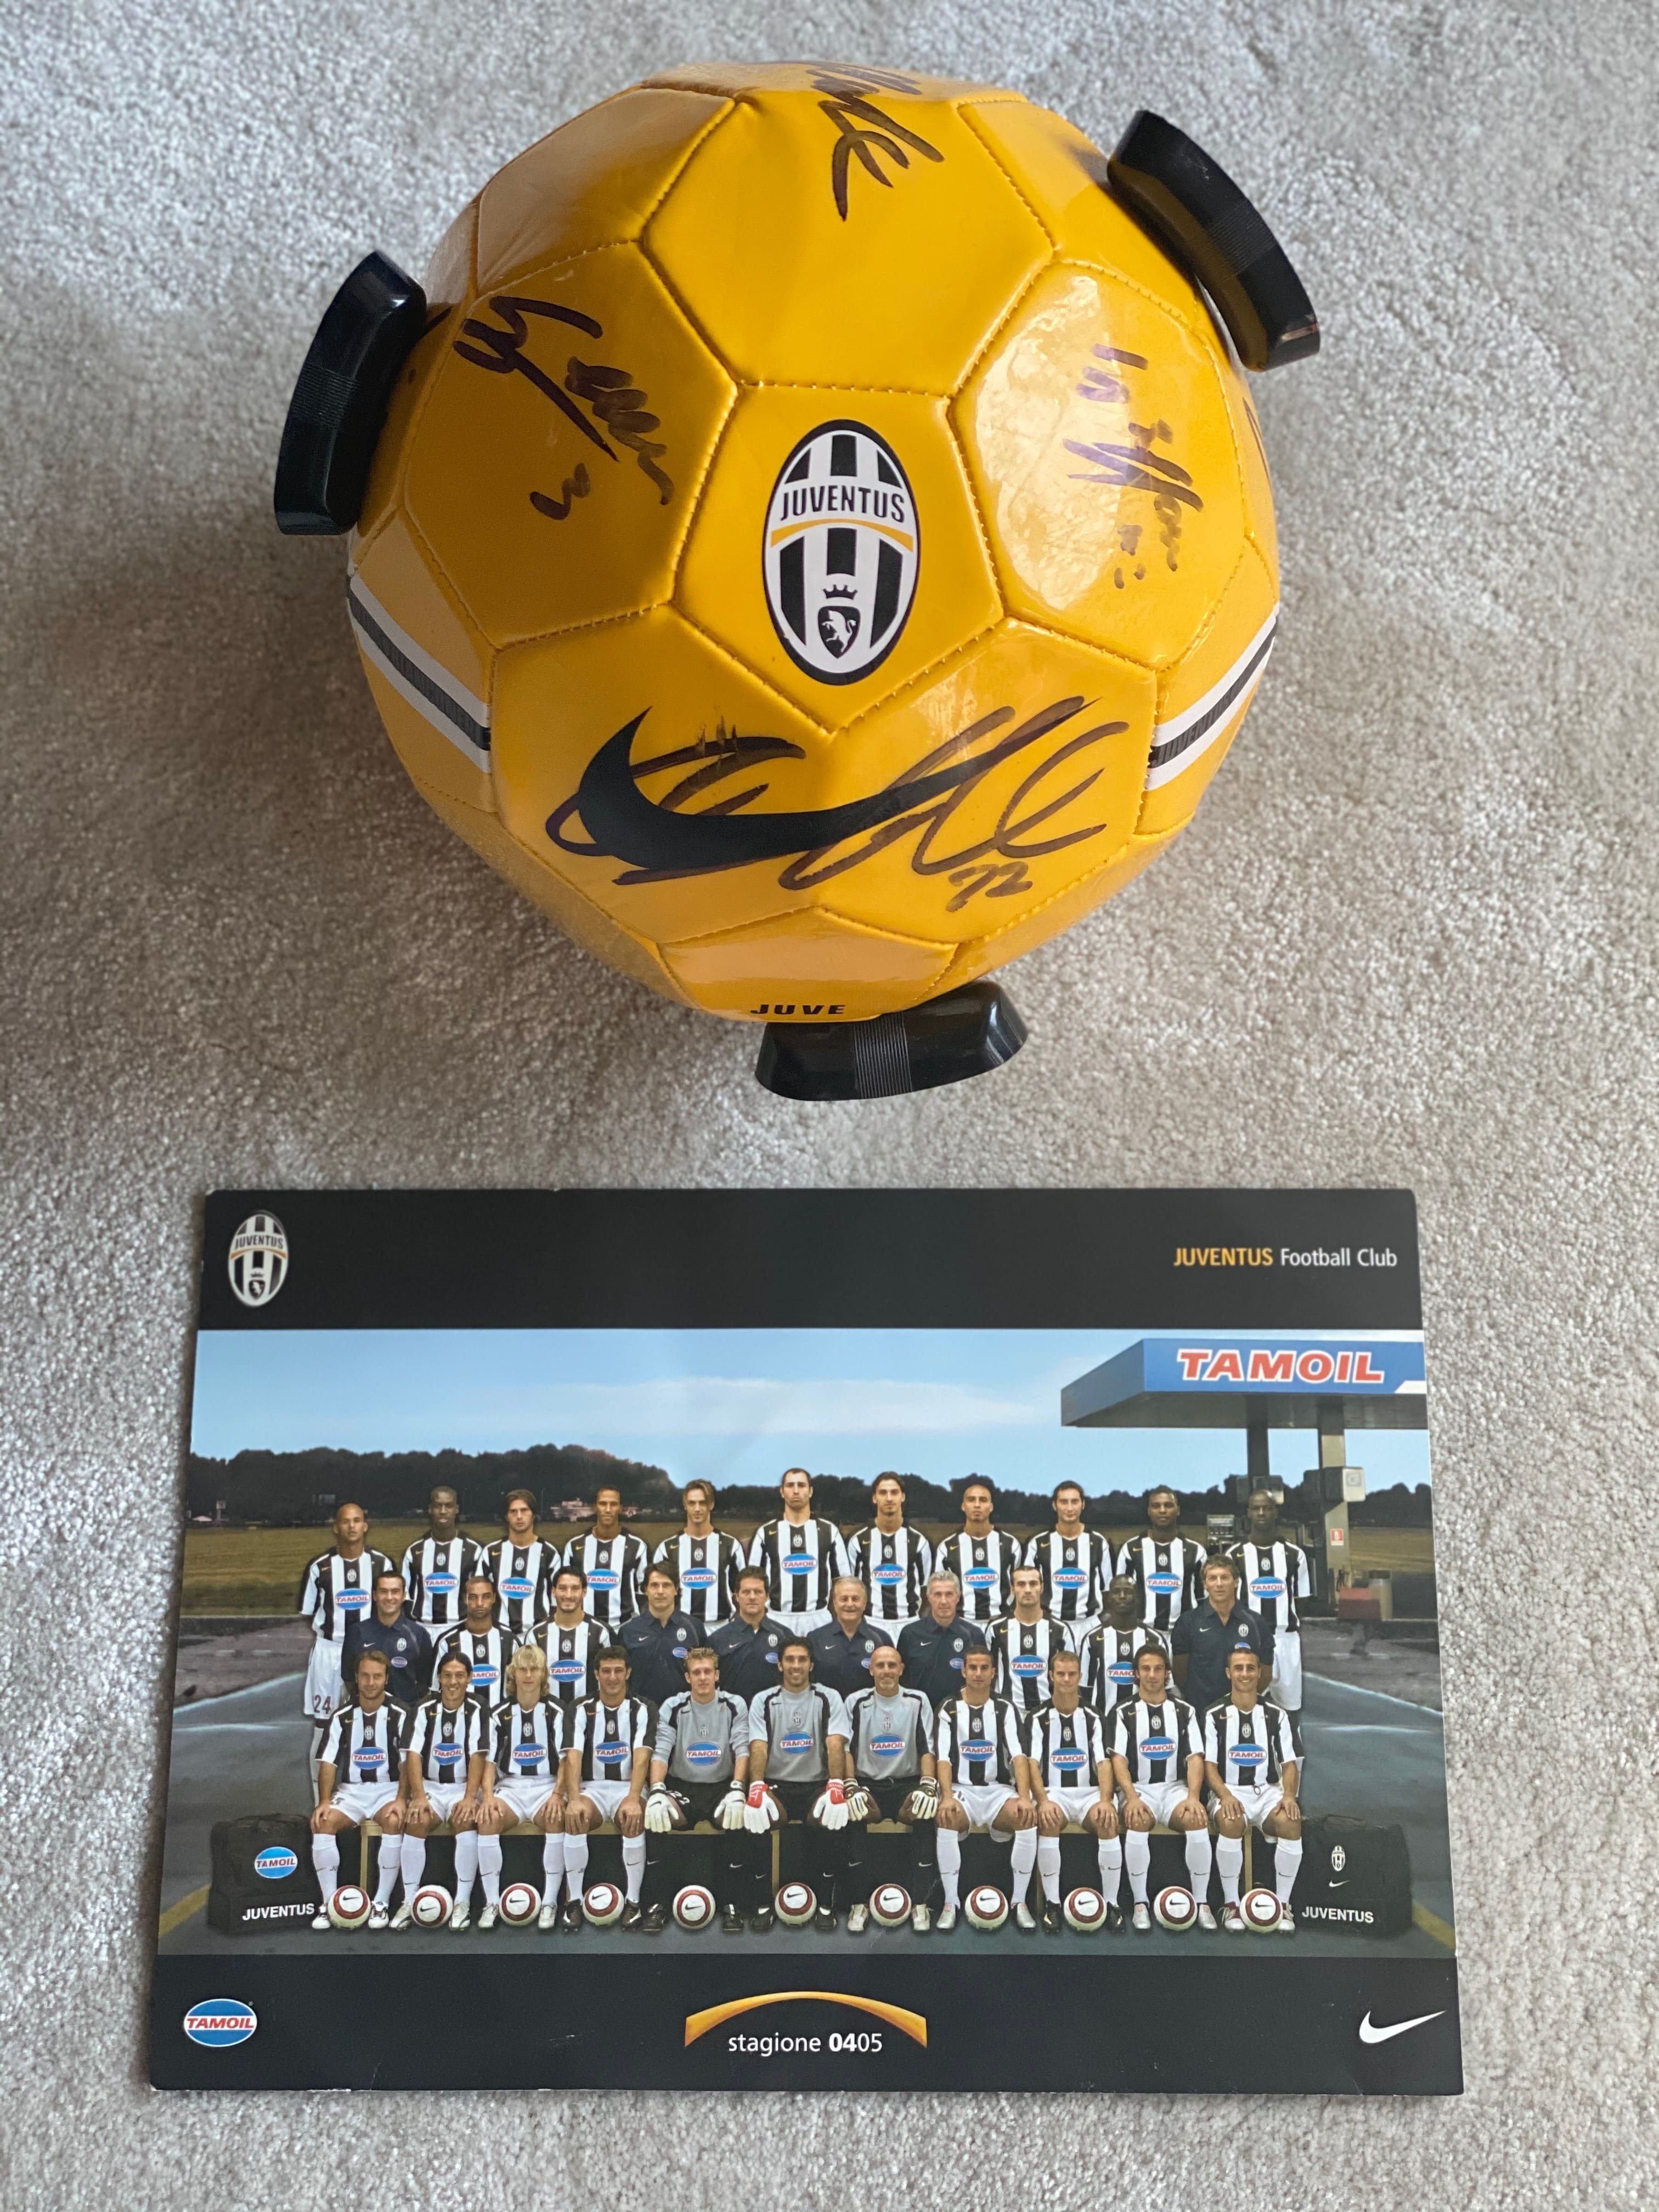 Signed Juventus football and 2004/05 team photo